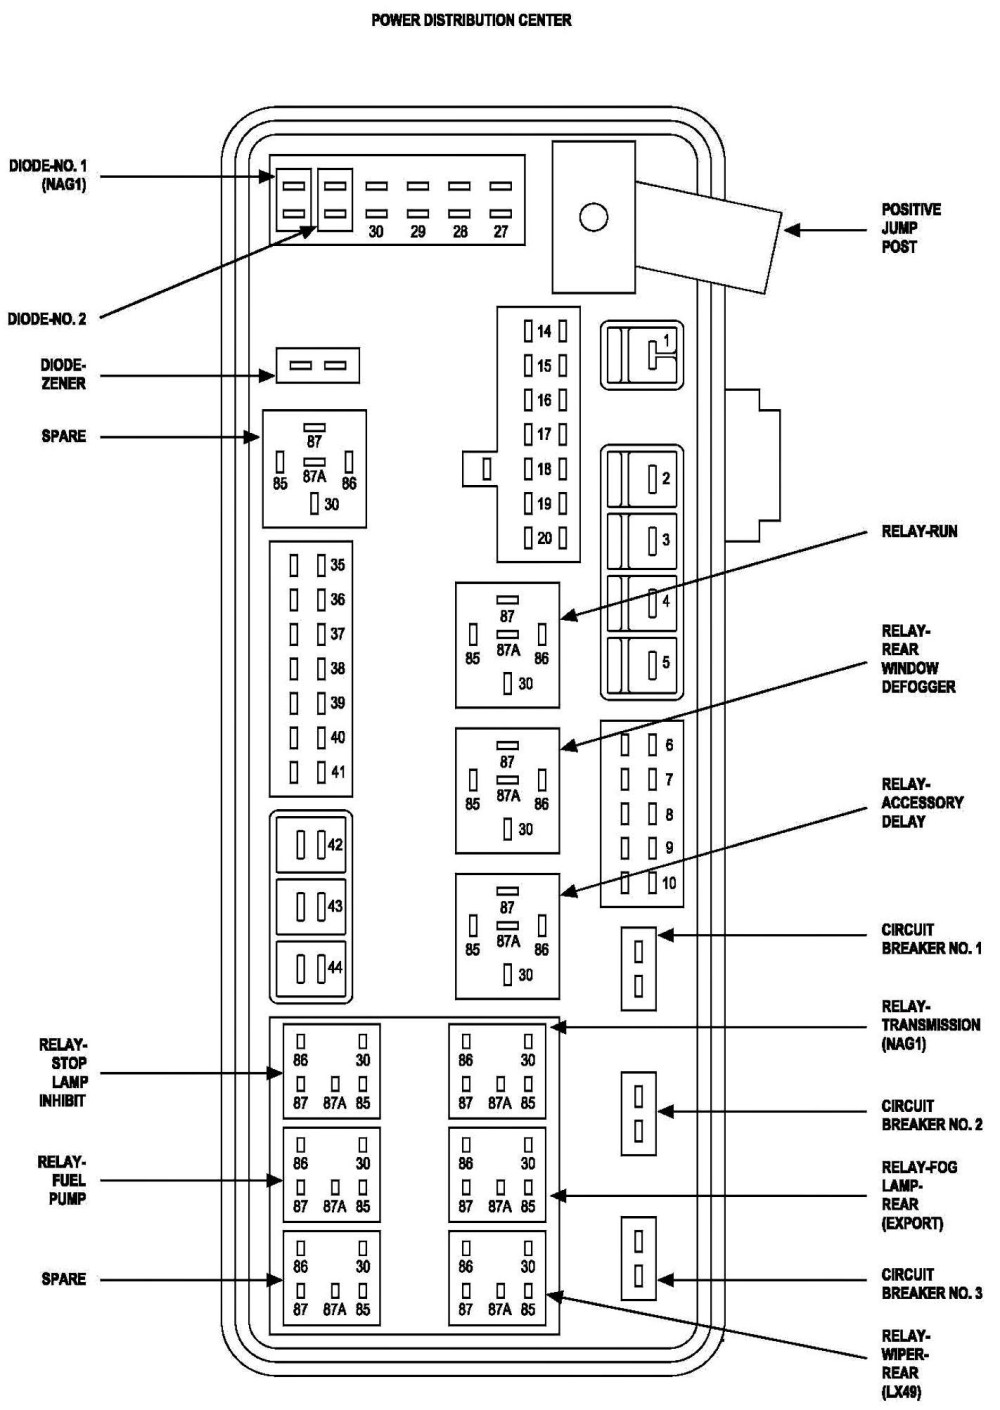 medium resolution of chrysler fuse diagram wiring diagram toolbox 2007 chrysler pt cruiser fuse box diagram 2007 pt cruiser fuse panel diagram